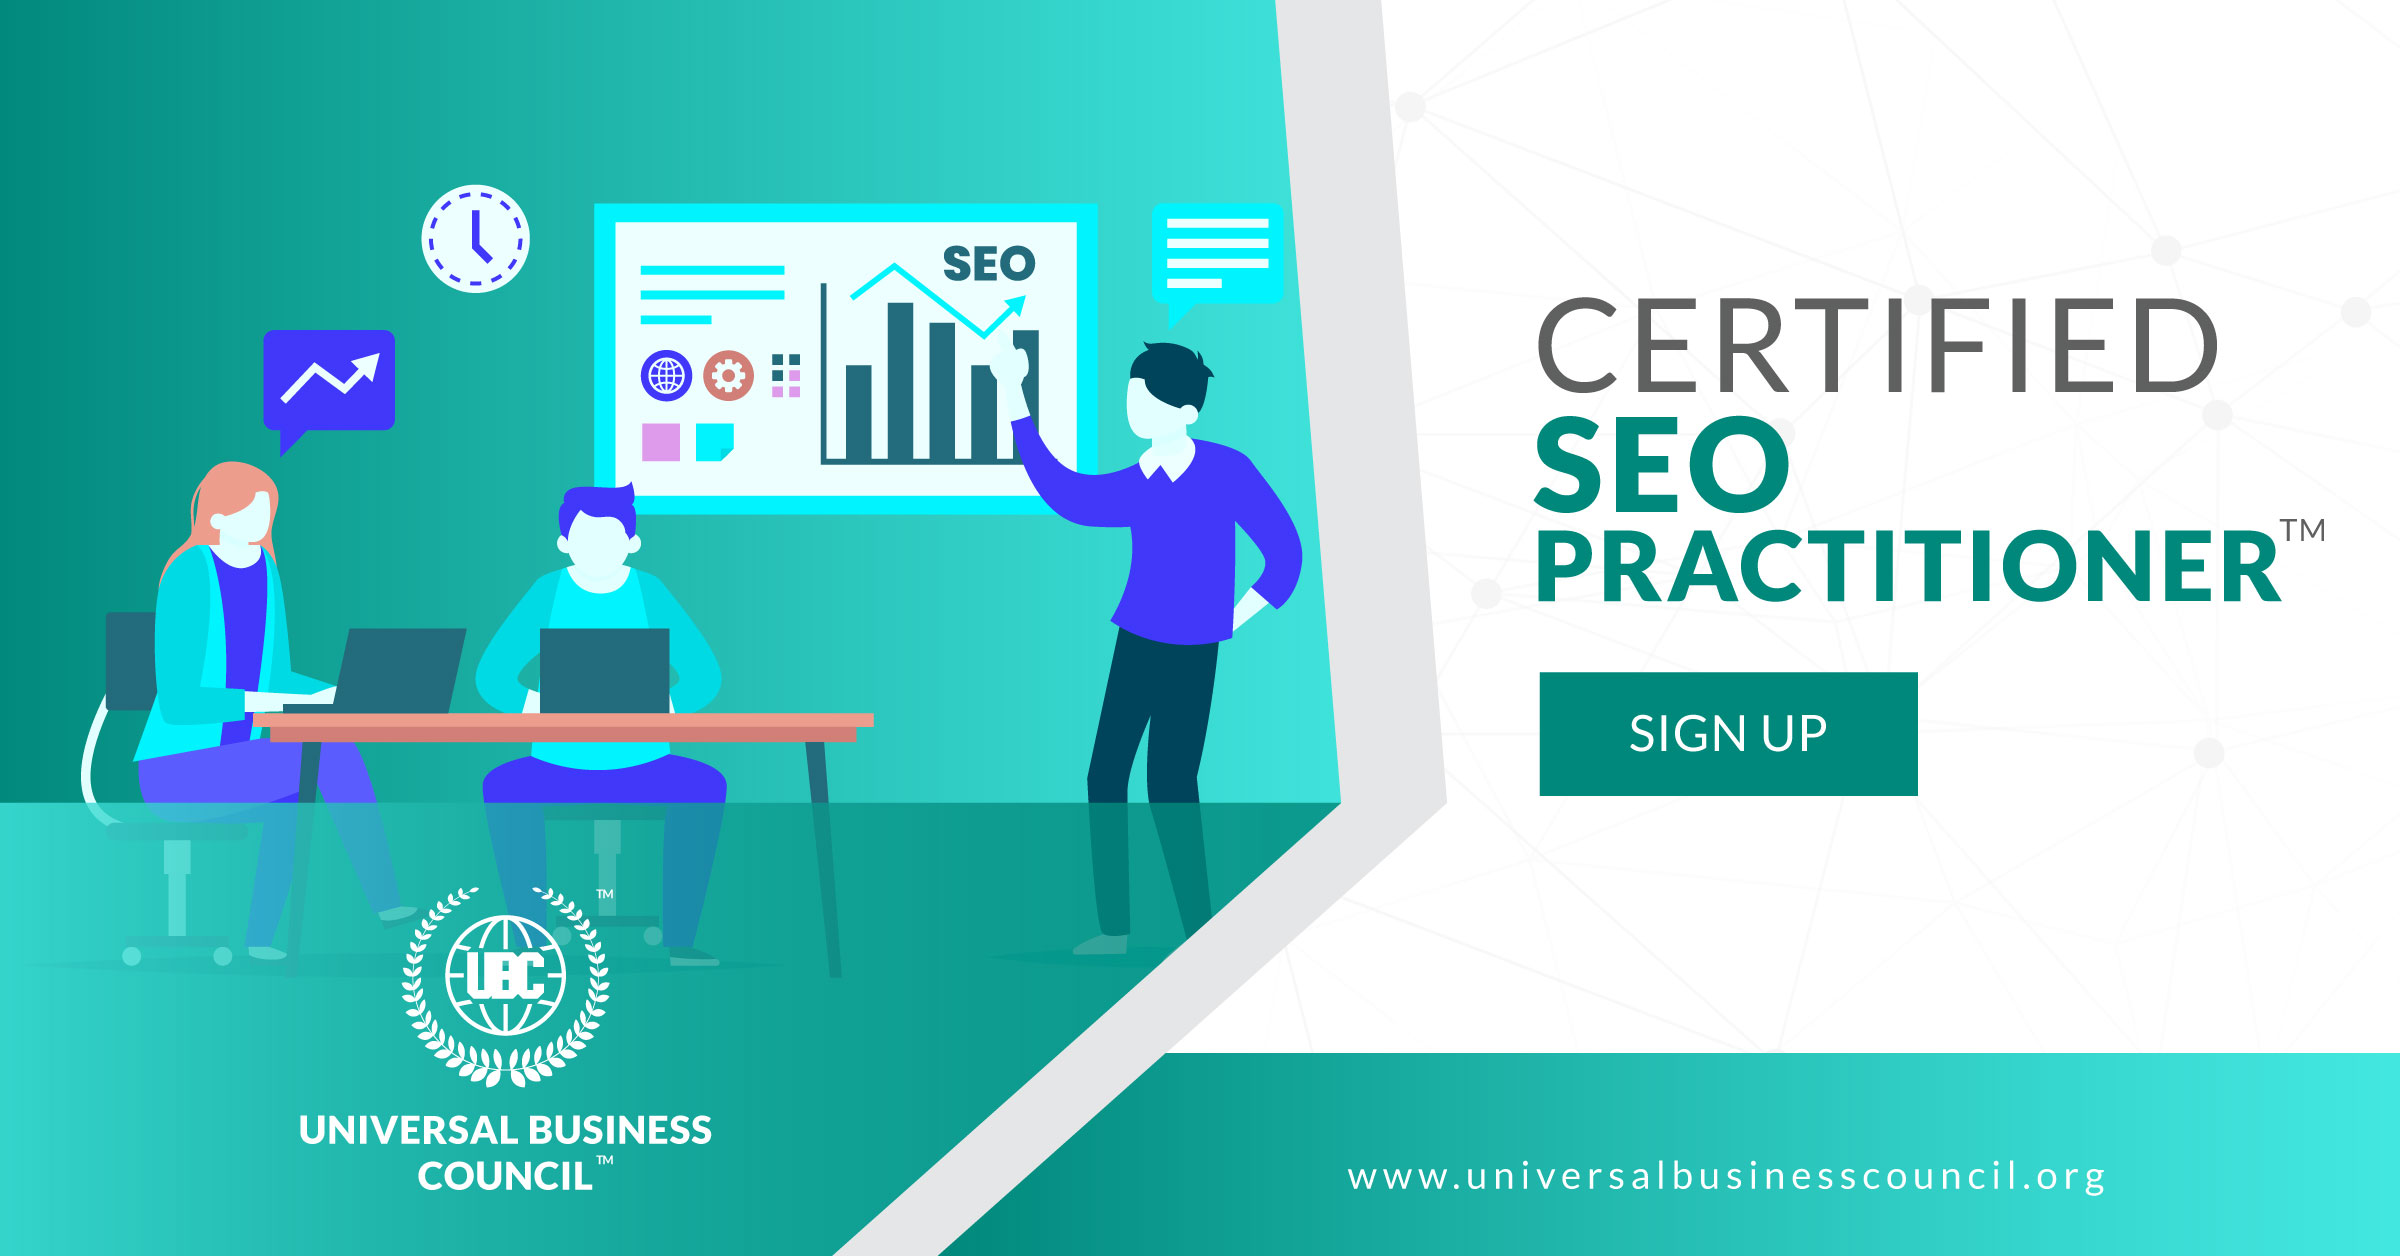 Certified-SEO-Practitioner